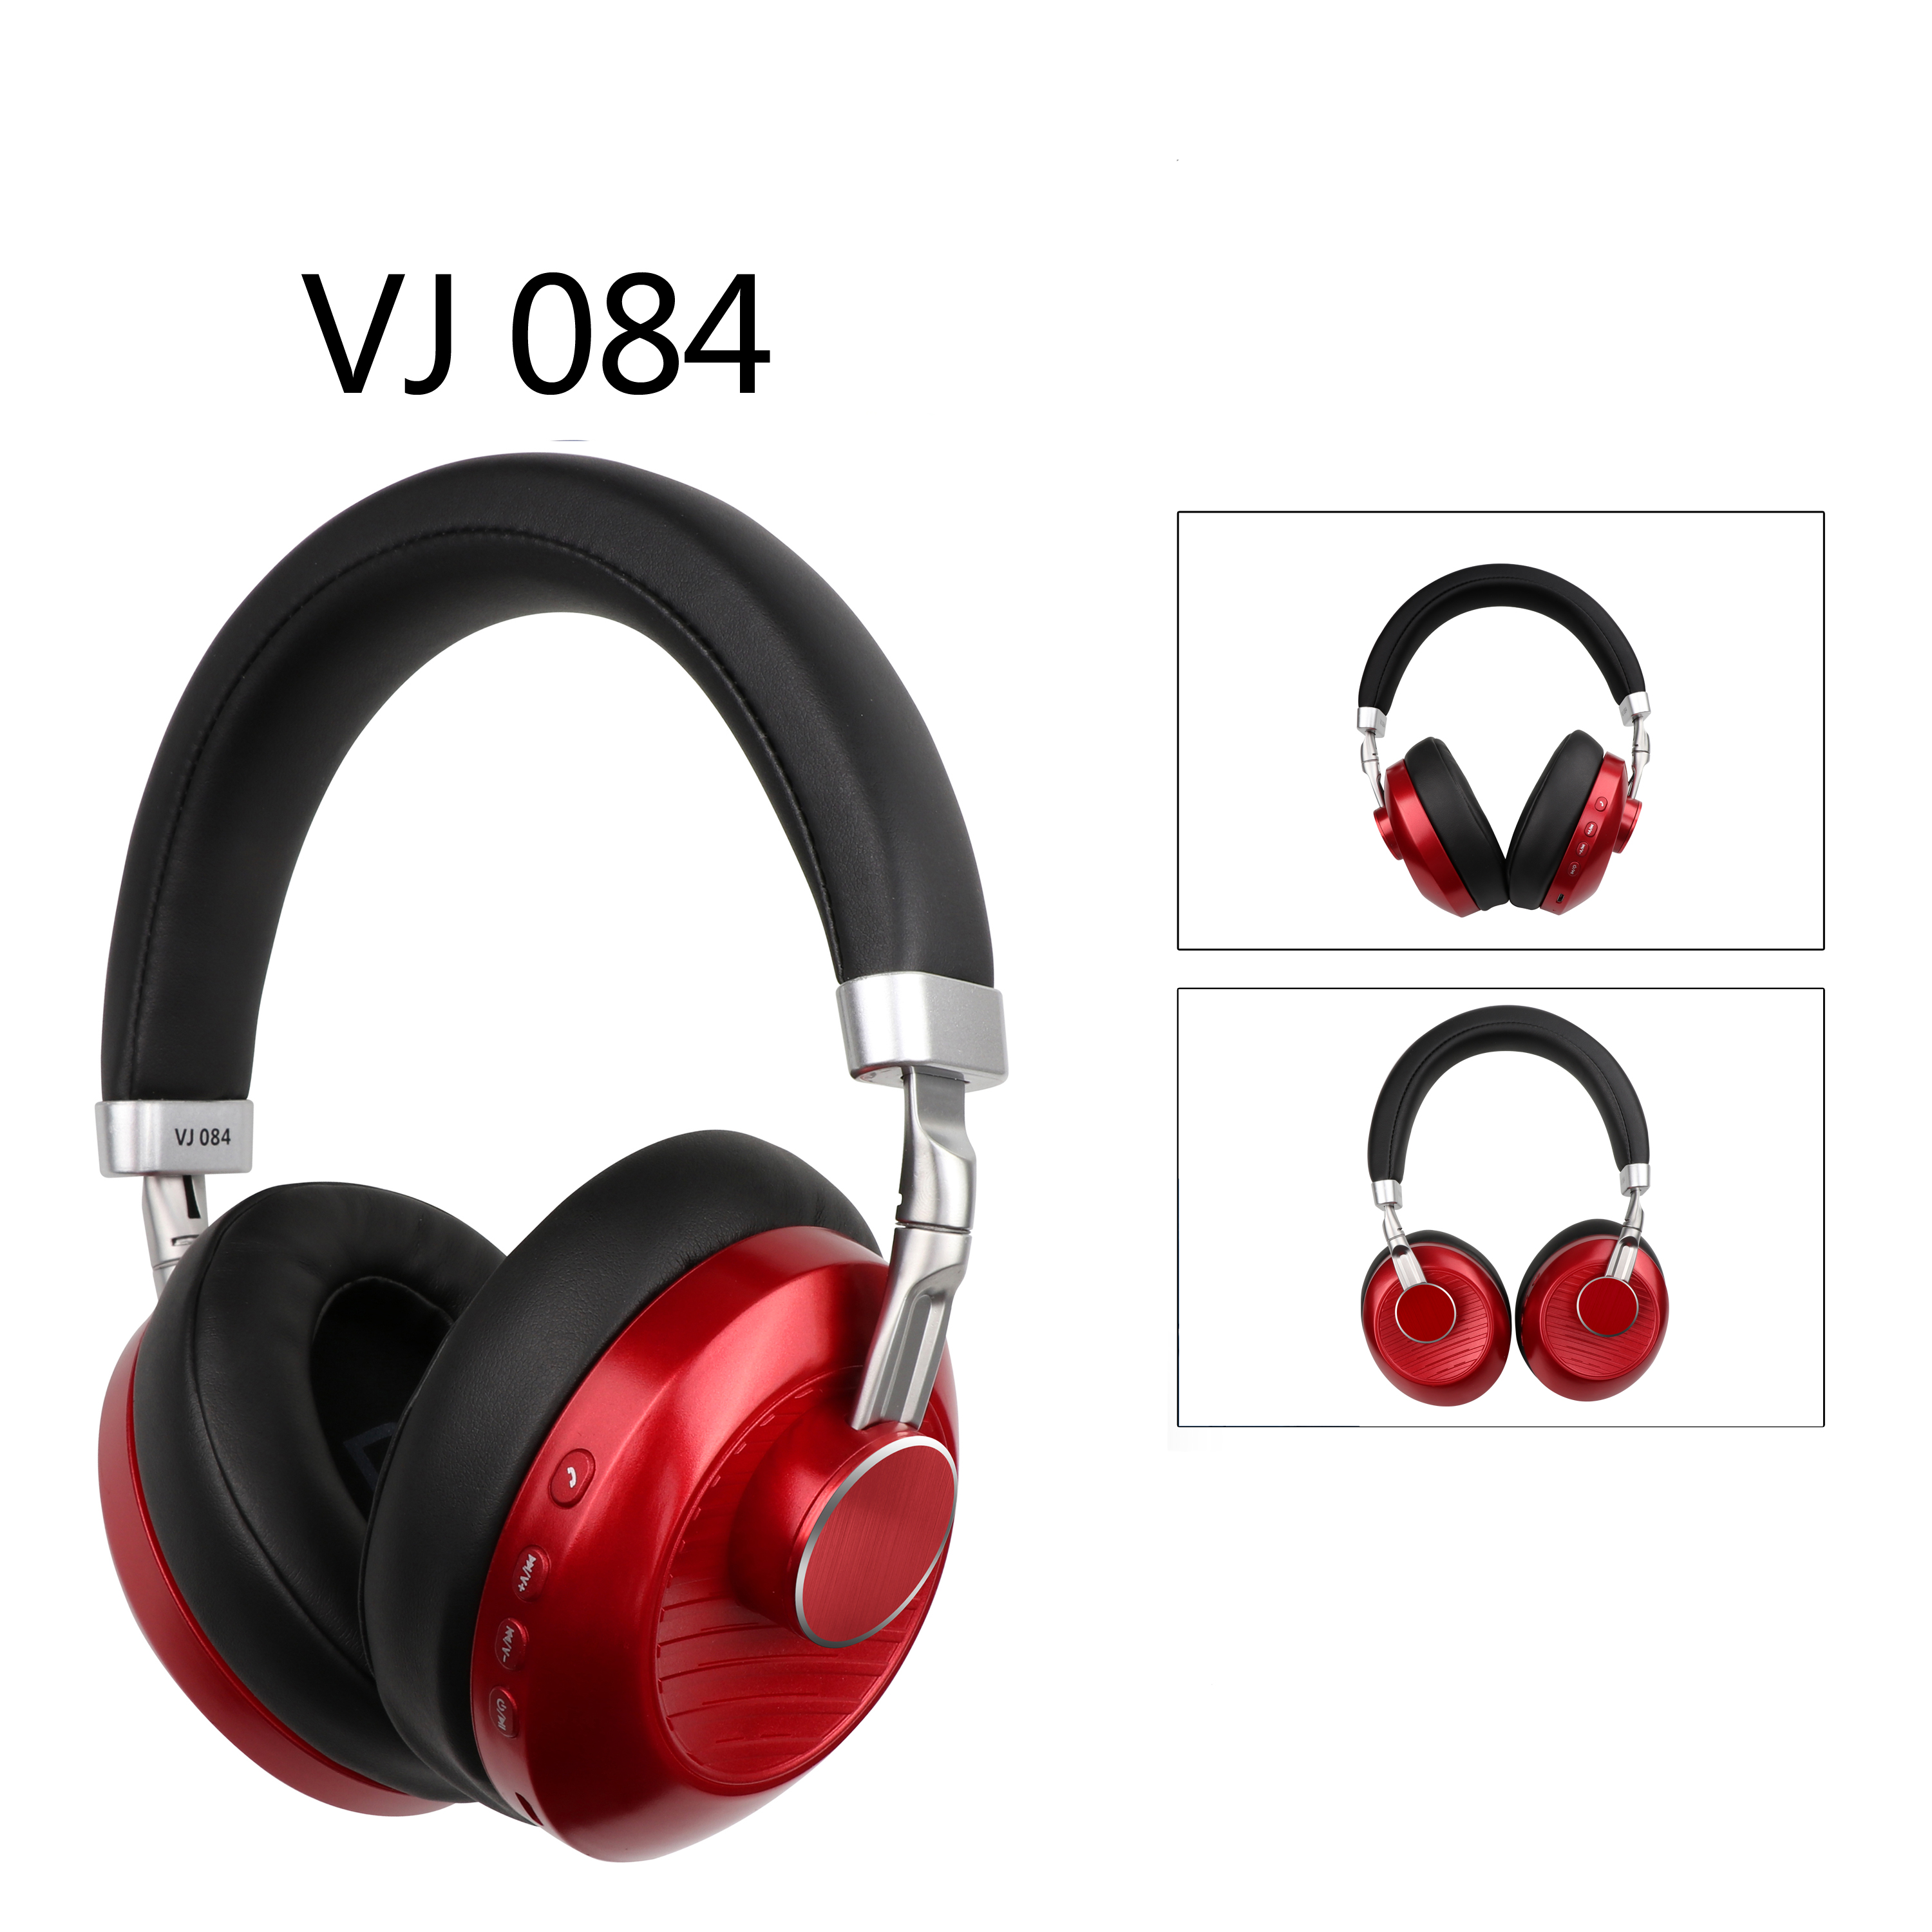 Vj084 Audifonos Bluetooth Headset Wireless Bluetooth Headphone Earphone In Low Price Buy At The Price Of 13 00 In Alibaba Com Imall Com